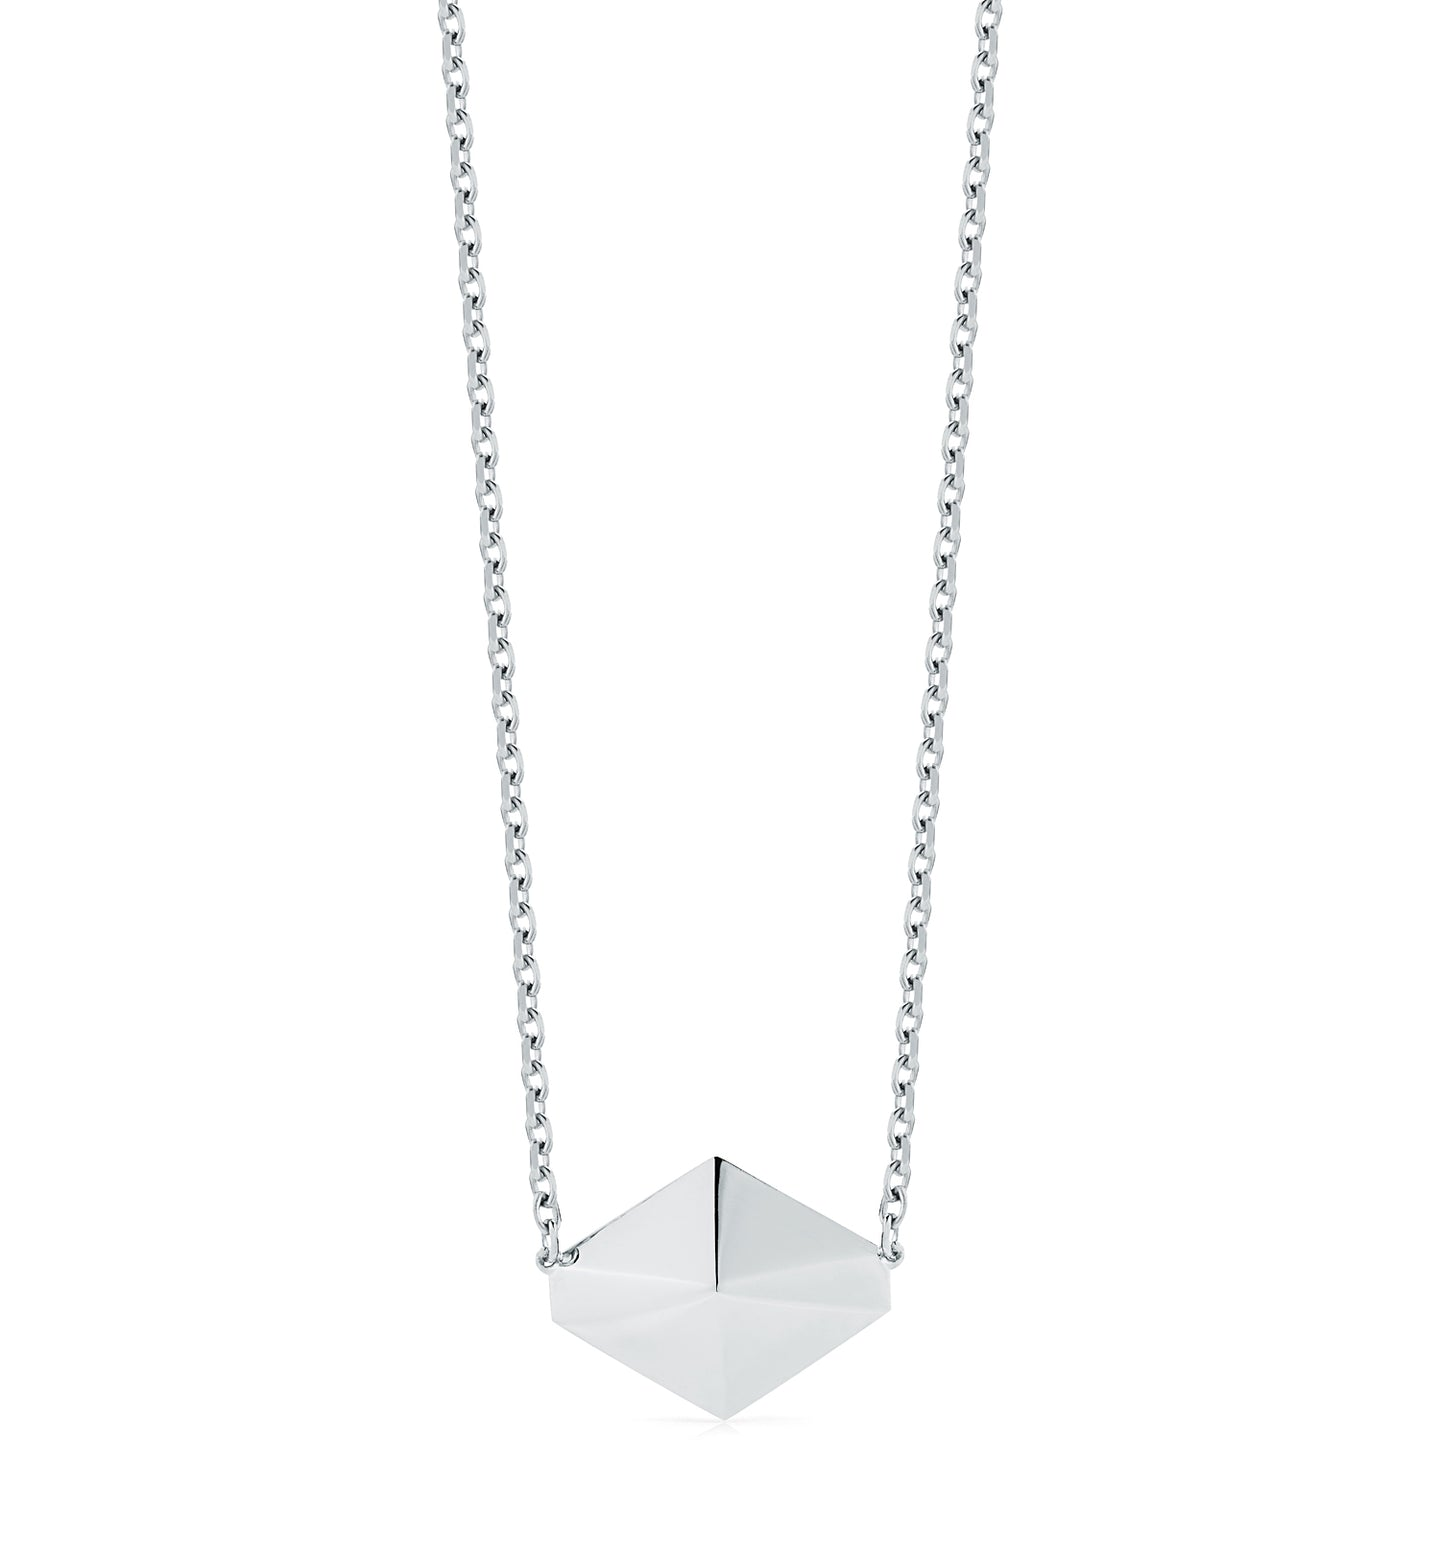 SYDNEY STERLING SILVER LARGE ORIGAMI PENDANT